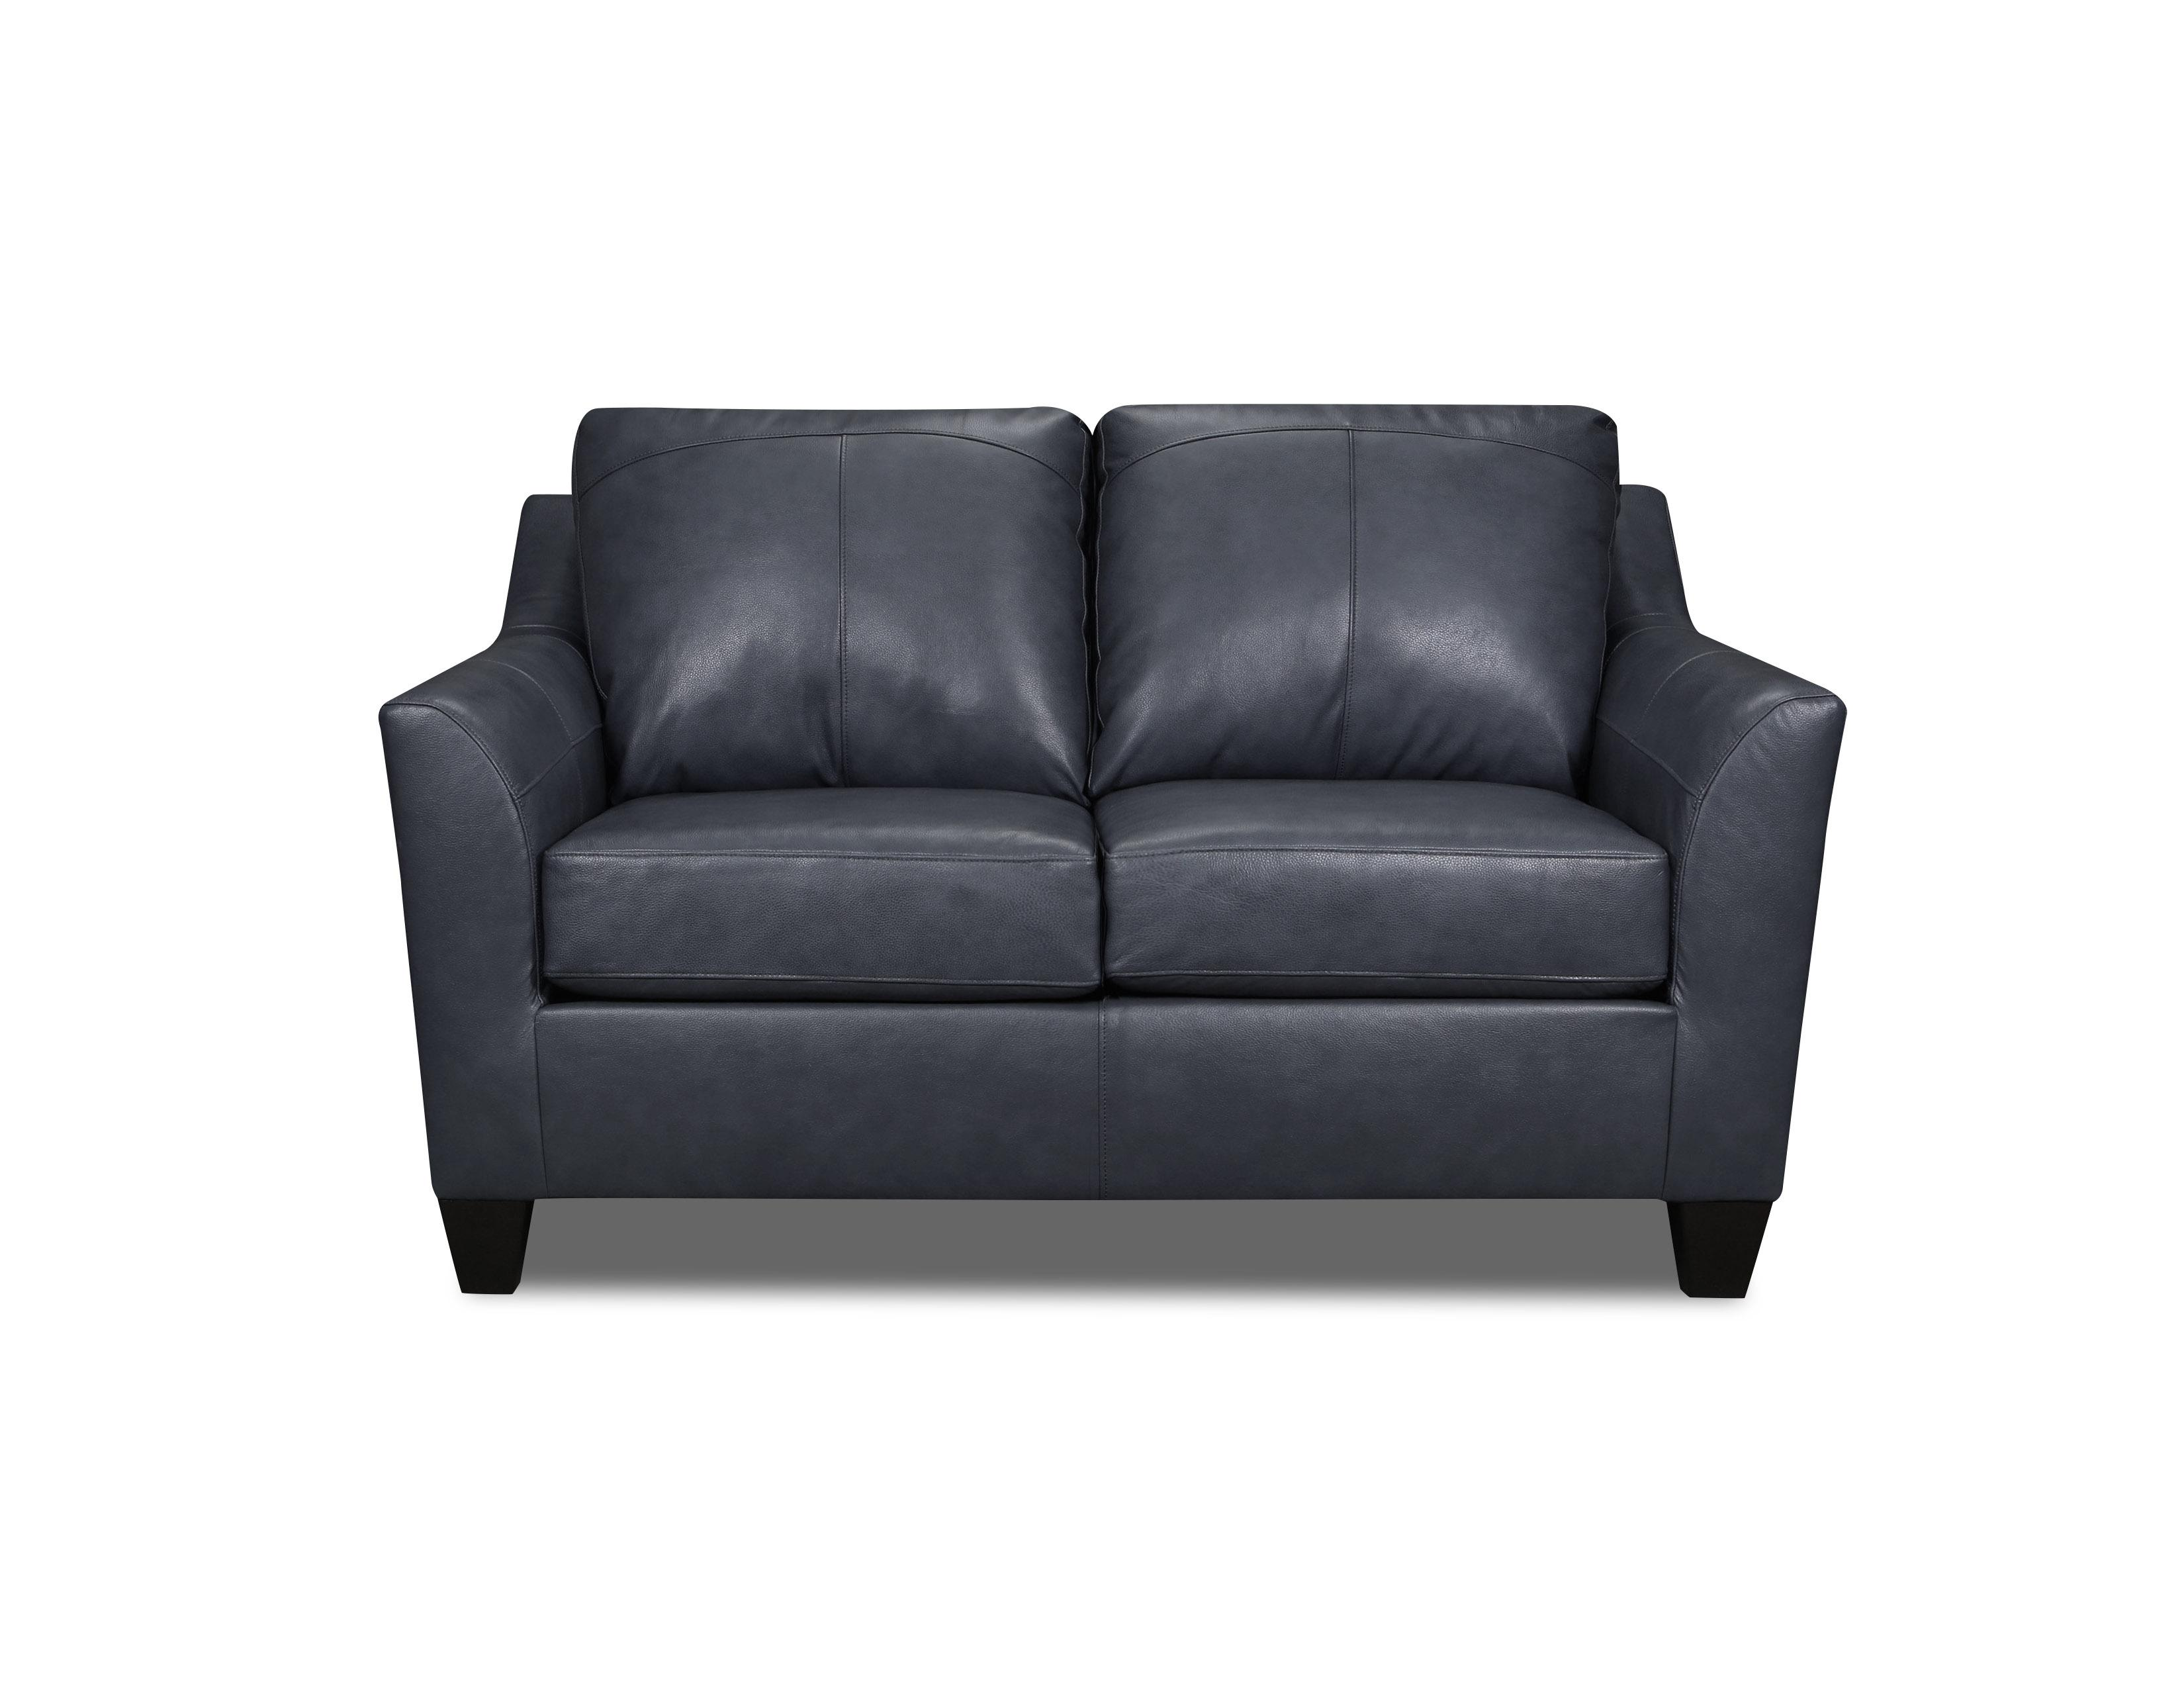 Discontinued lane furniture soft touch shale leather loveseat click to enlarge